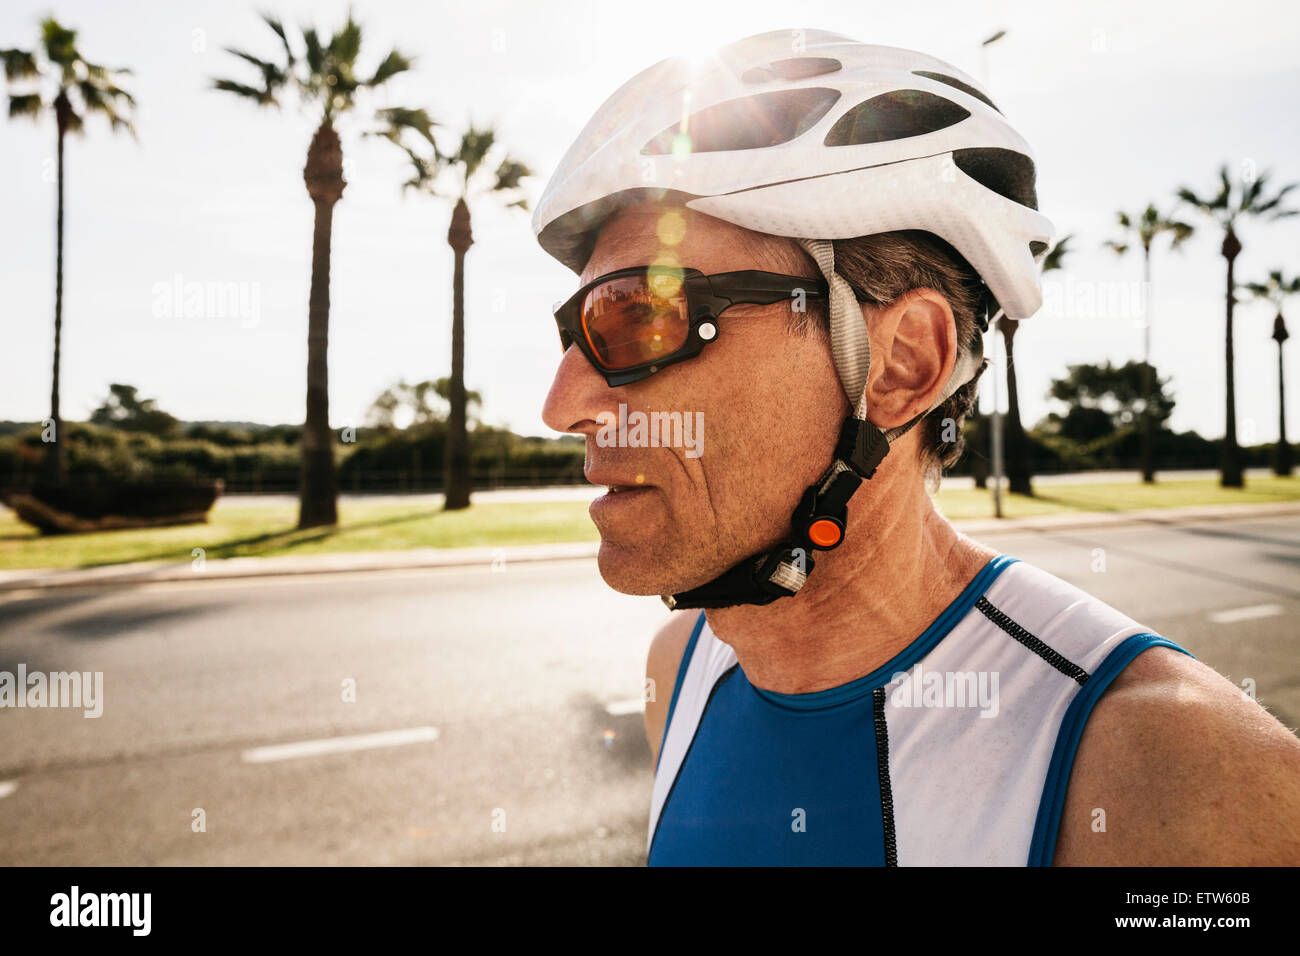 Spain, Mallorca, Sa Coma, portrait of triathlet with cycling helmet - Stock Image